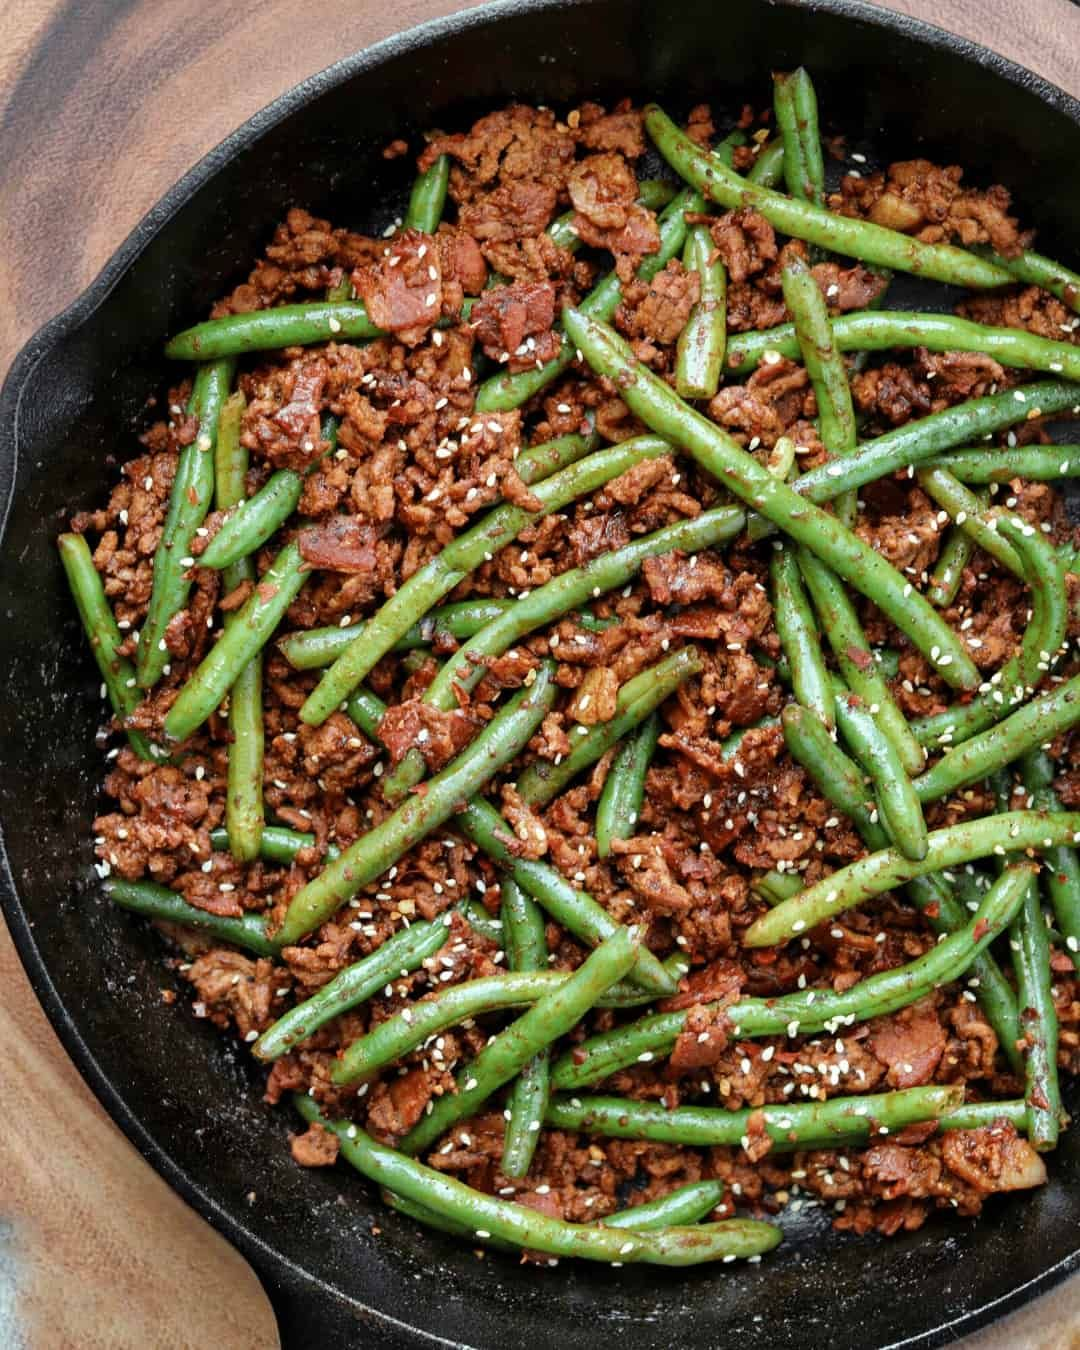 Sriracha Bbq Ground Beef And Green Beans Kinda Healthy Recipes In 2020 Ground Beef Recipes Healthy Beef And Green Beans Recipe Healthy Beef Recipes